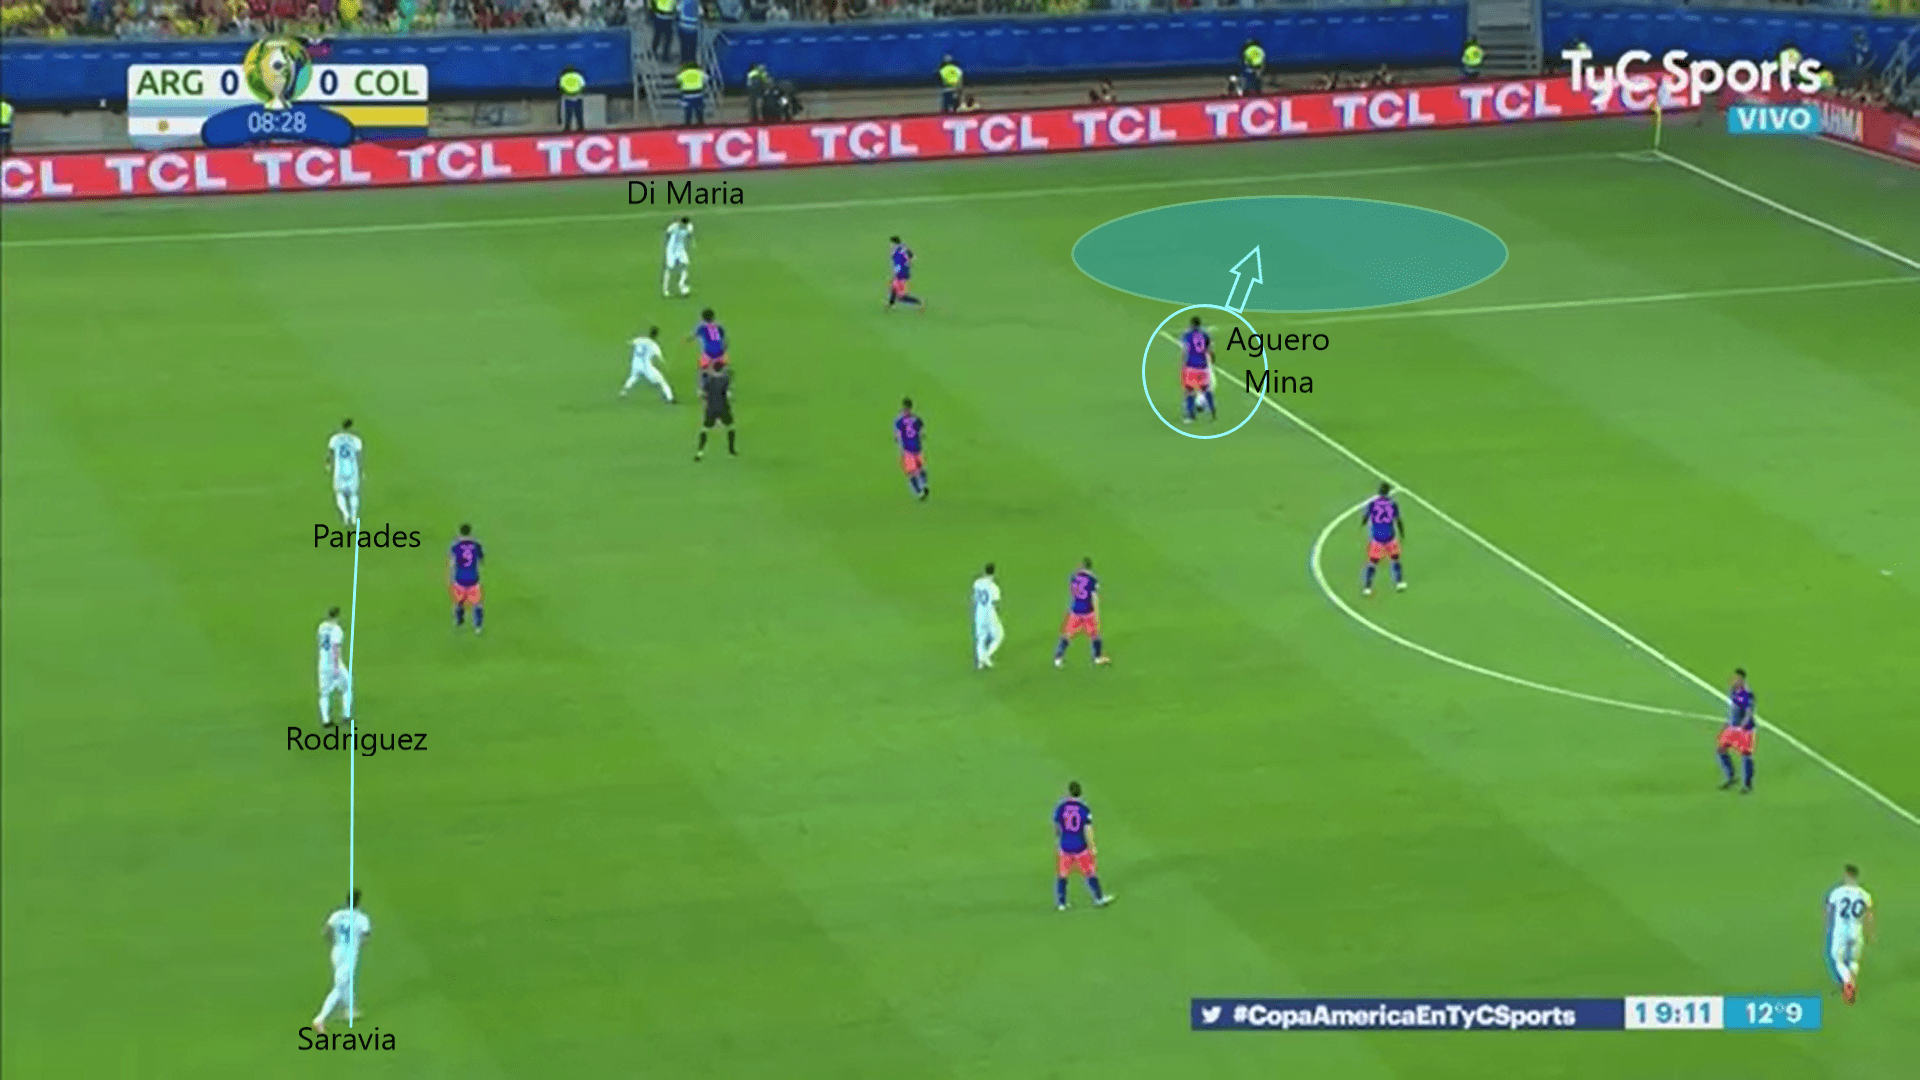 Copa América 2019 Tactical Analysis: Argentina vs Colombia